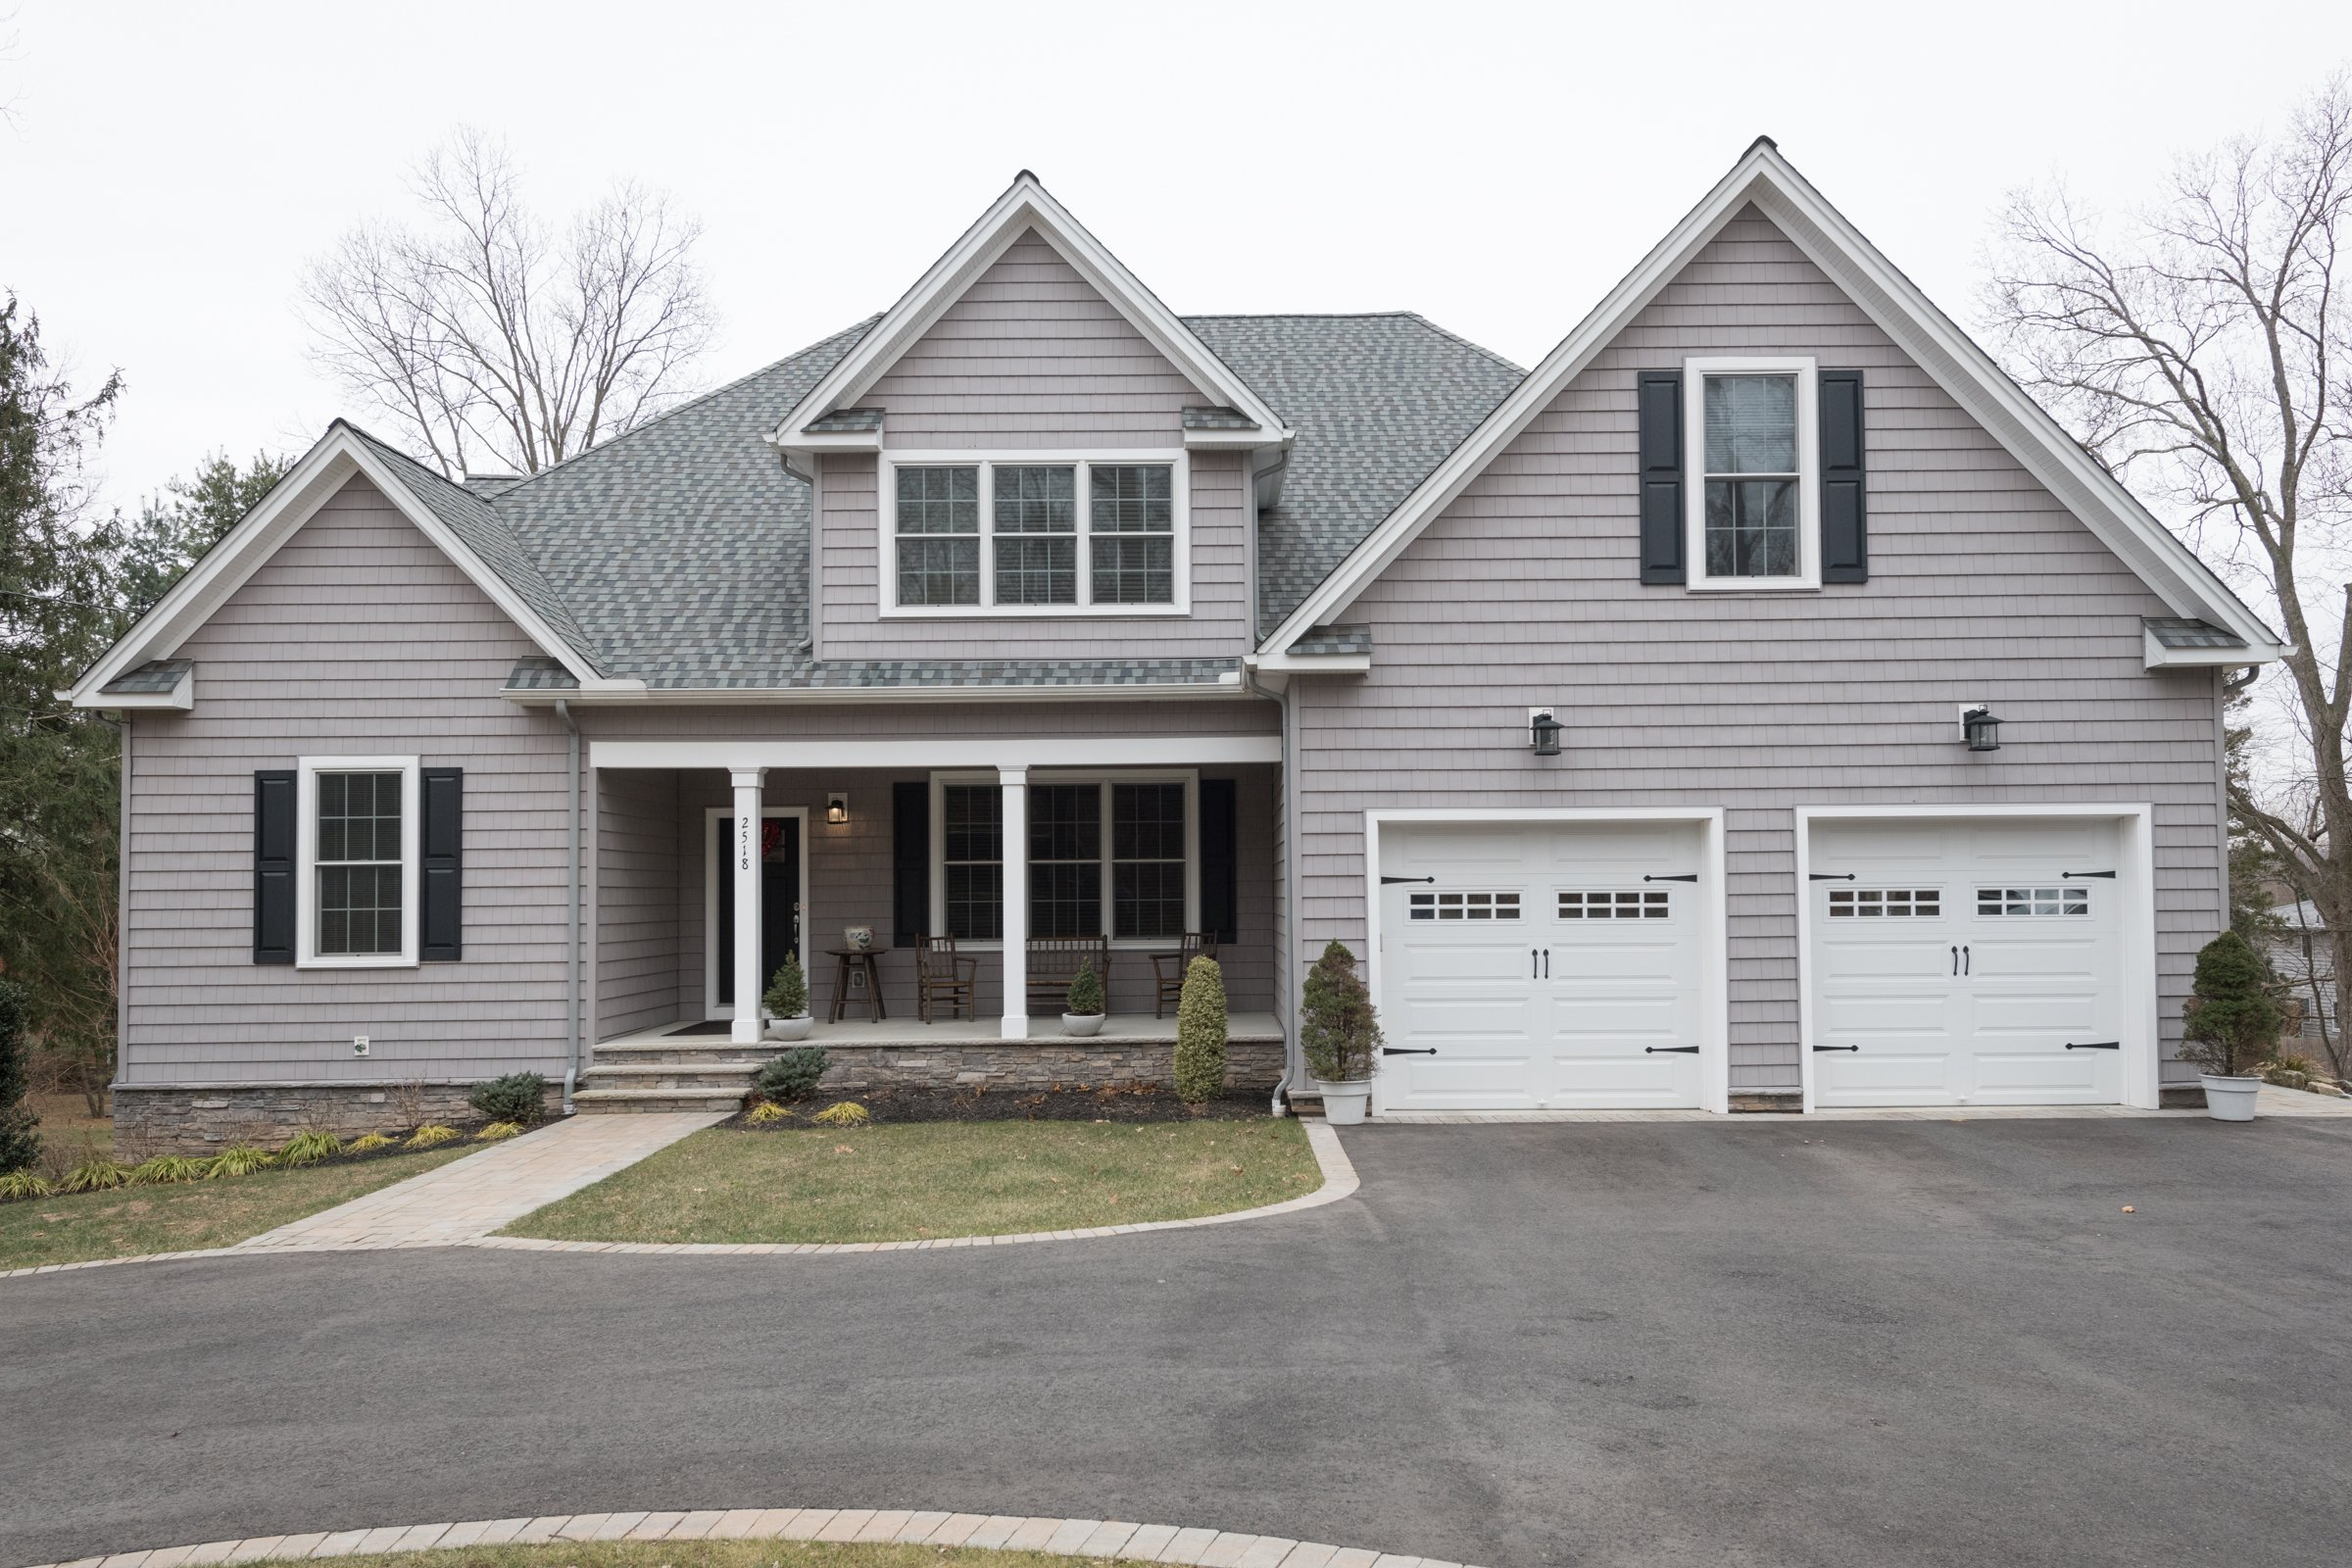 grey custom home with 2 white garages by GTG custom home builders in new jersey